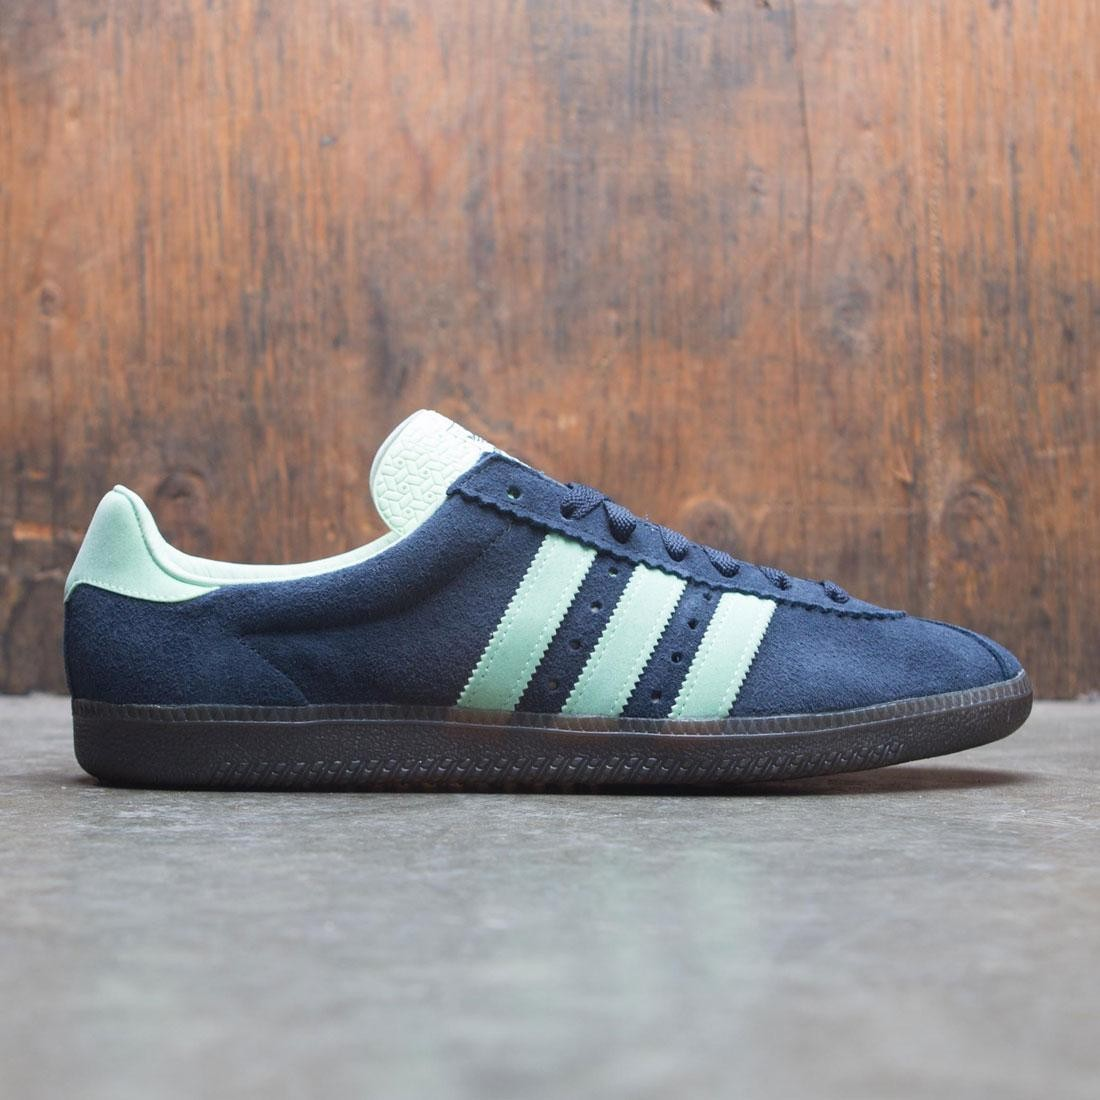 b26b8e7aee95 Adidas Men Padiham SPZL navy night navy mist jade